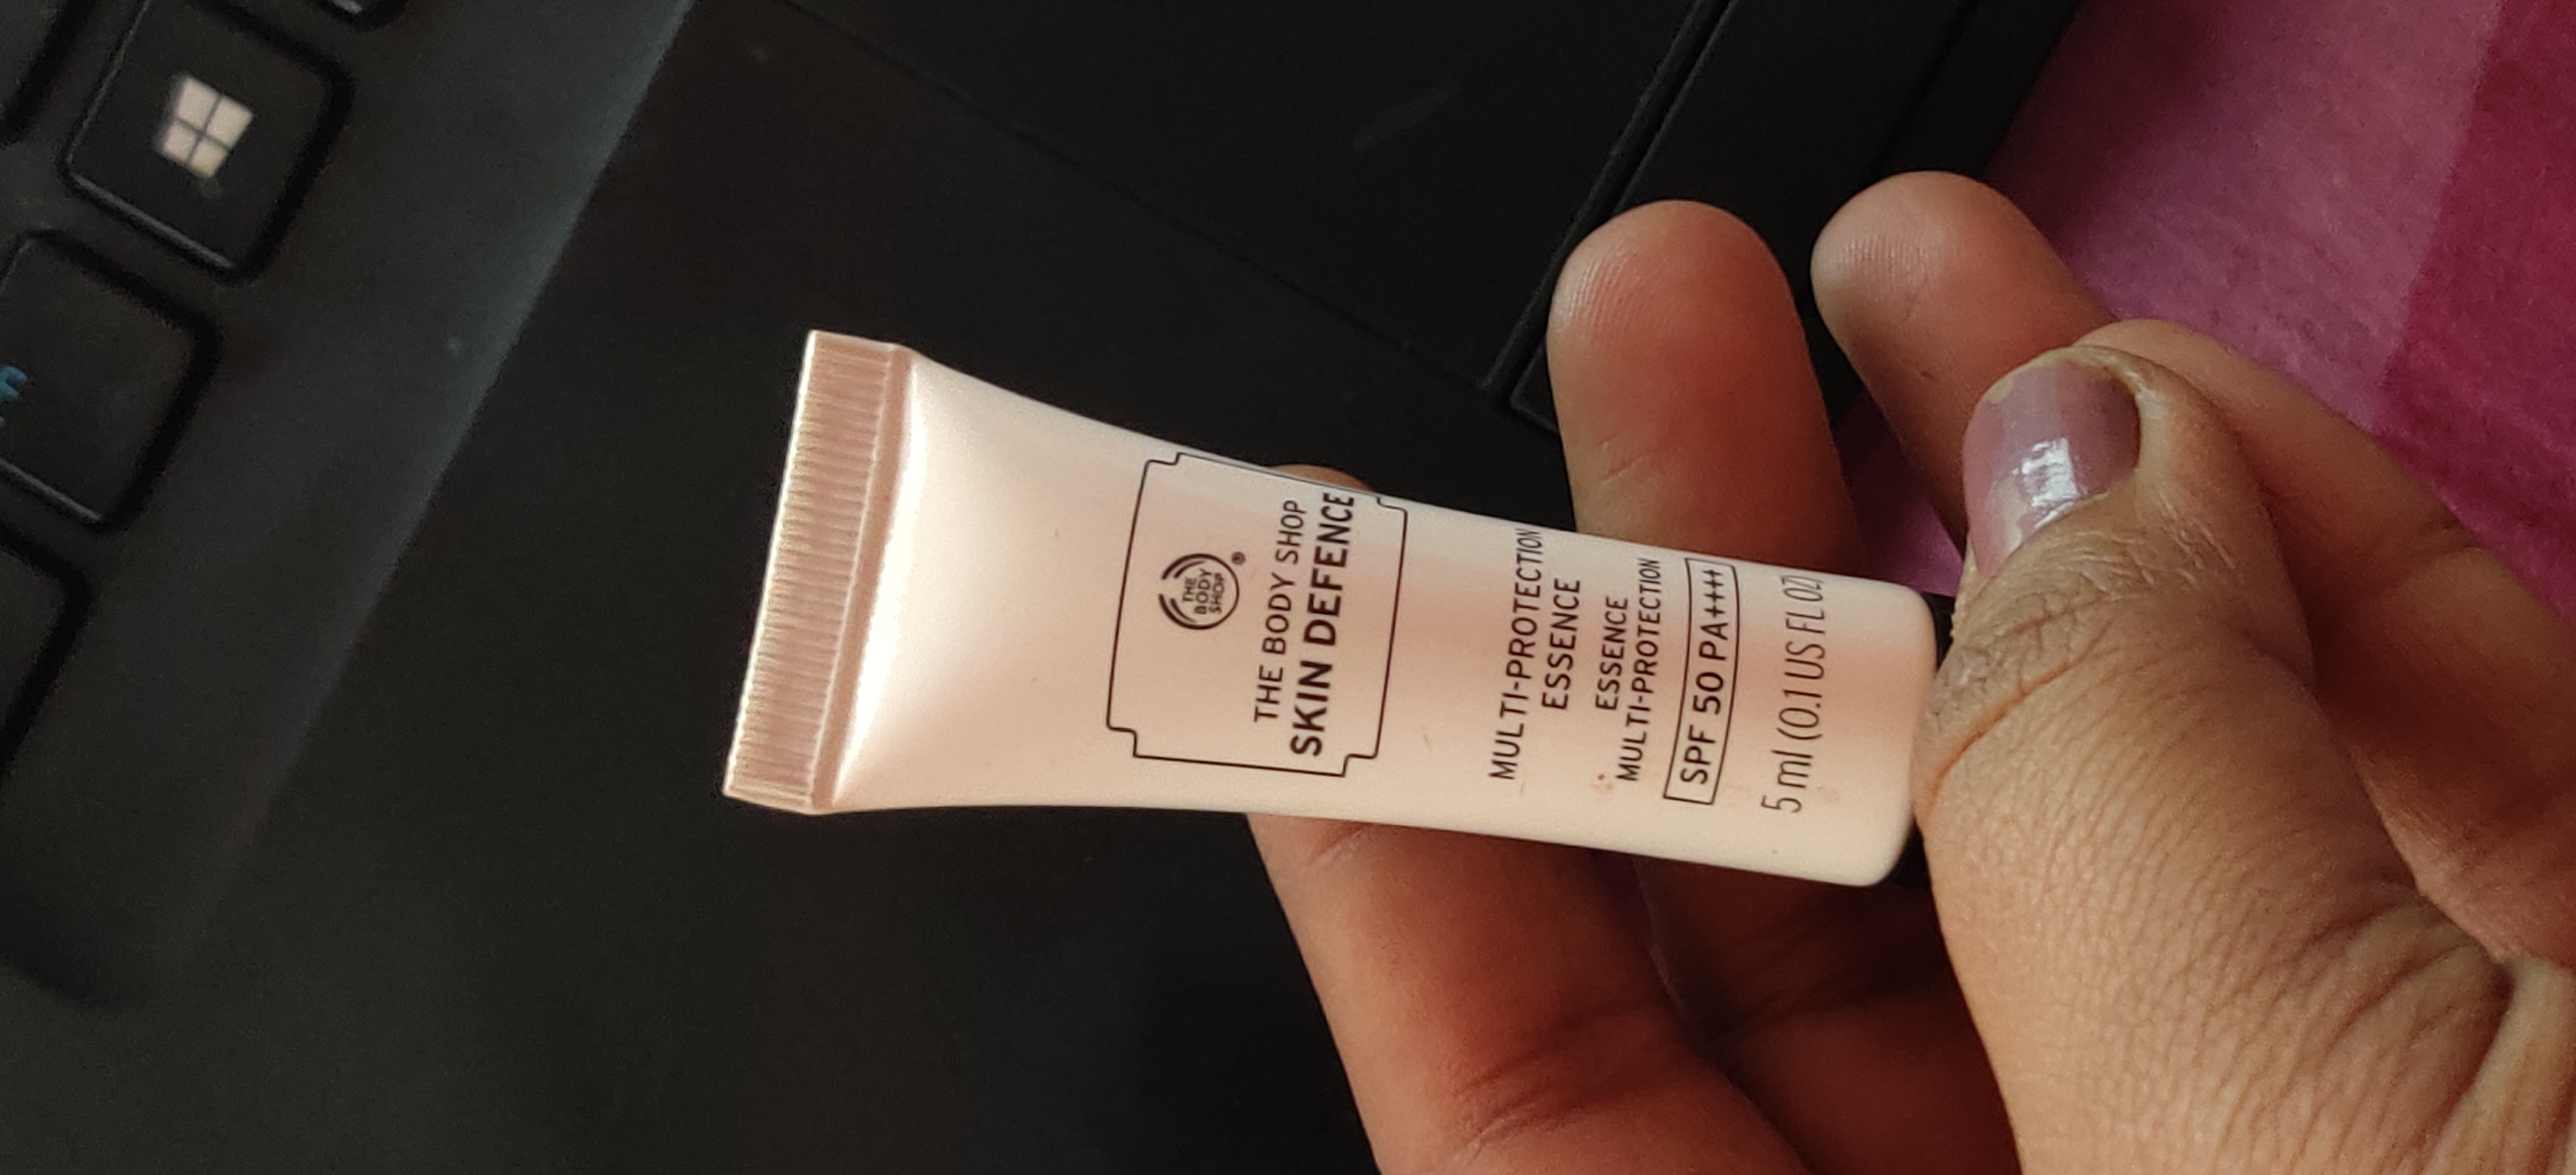 The Body Shop Skin Defence Multi Protection Essence SPF 50 PA+++ -Best SPF!!-By qwerty12345